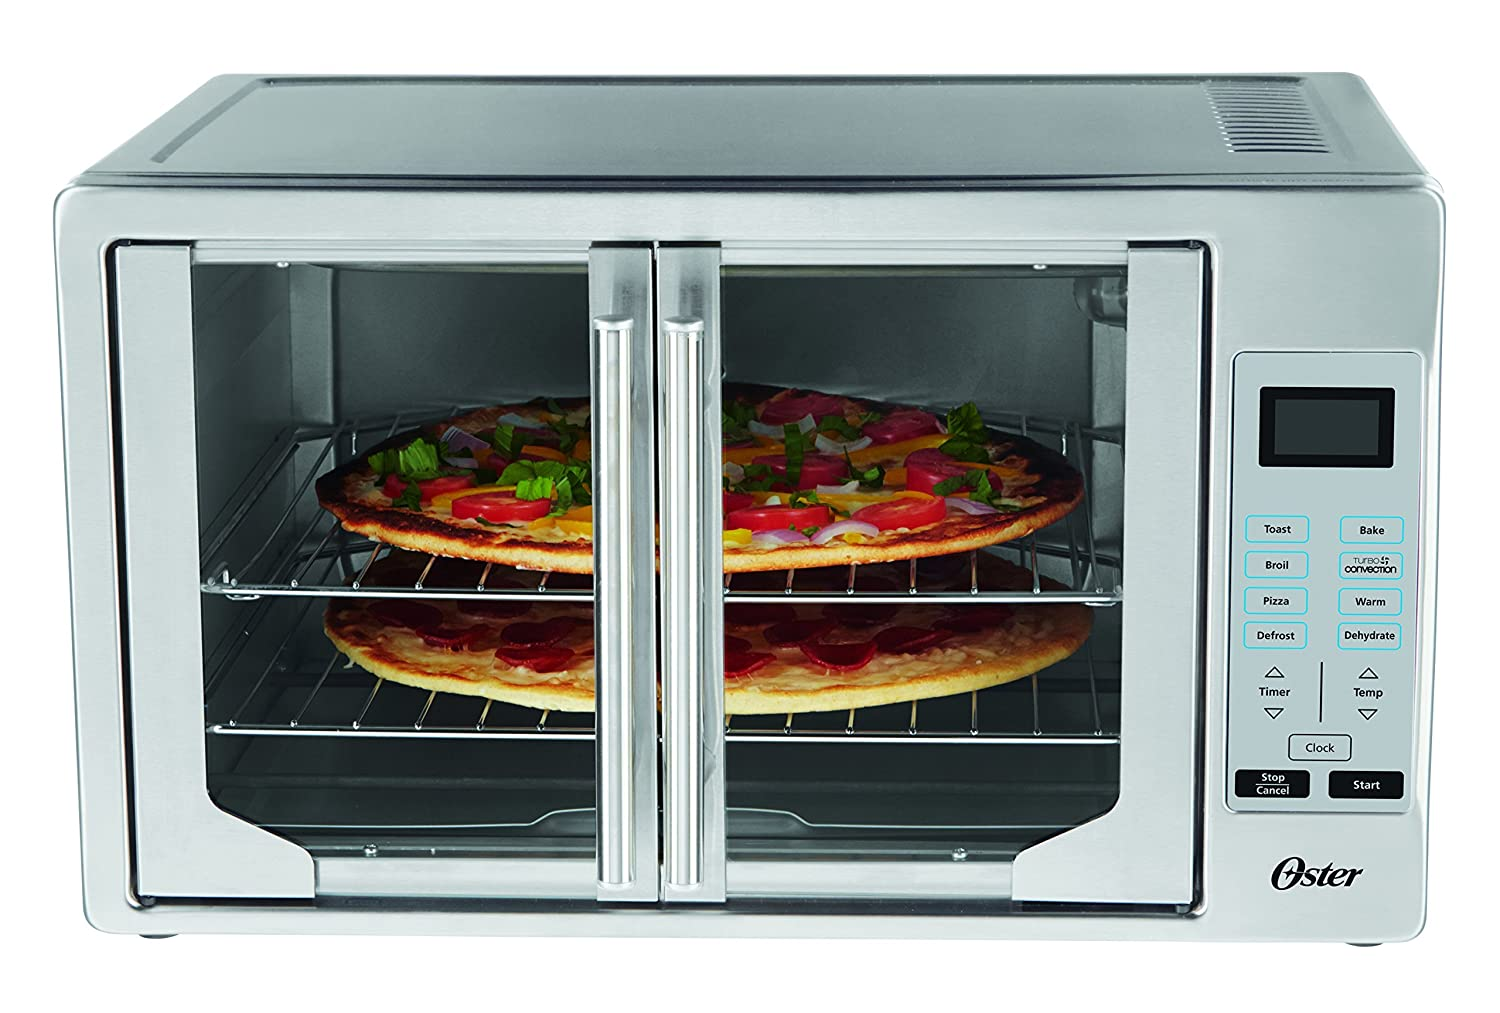 Oster TSSTTVFDDG Digital French Door Oven, Stainless Steel (Renewed)